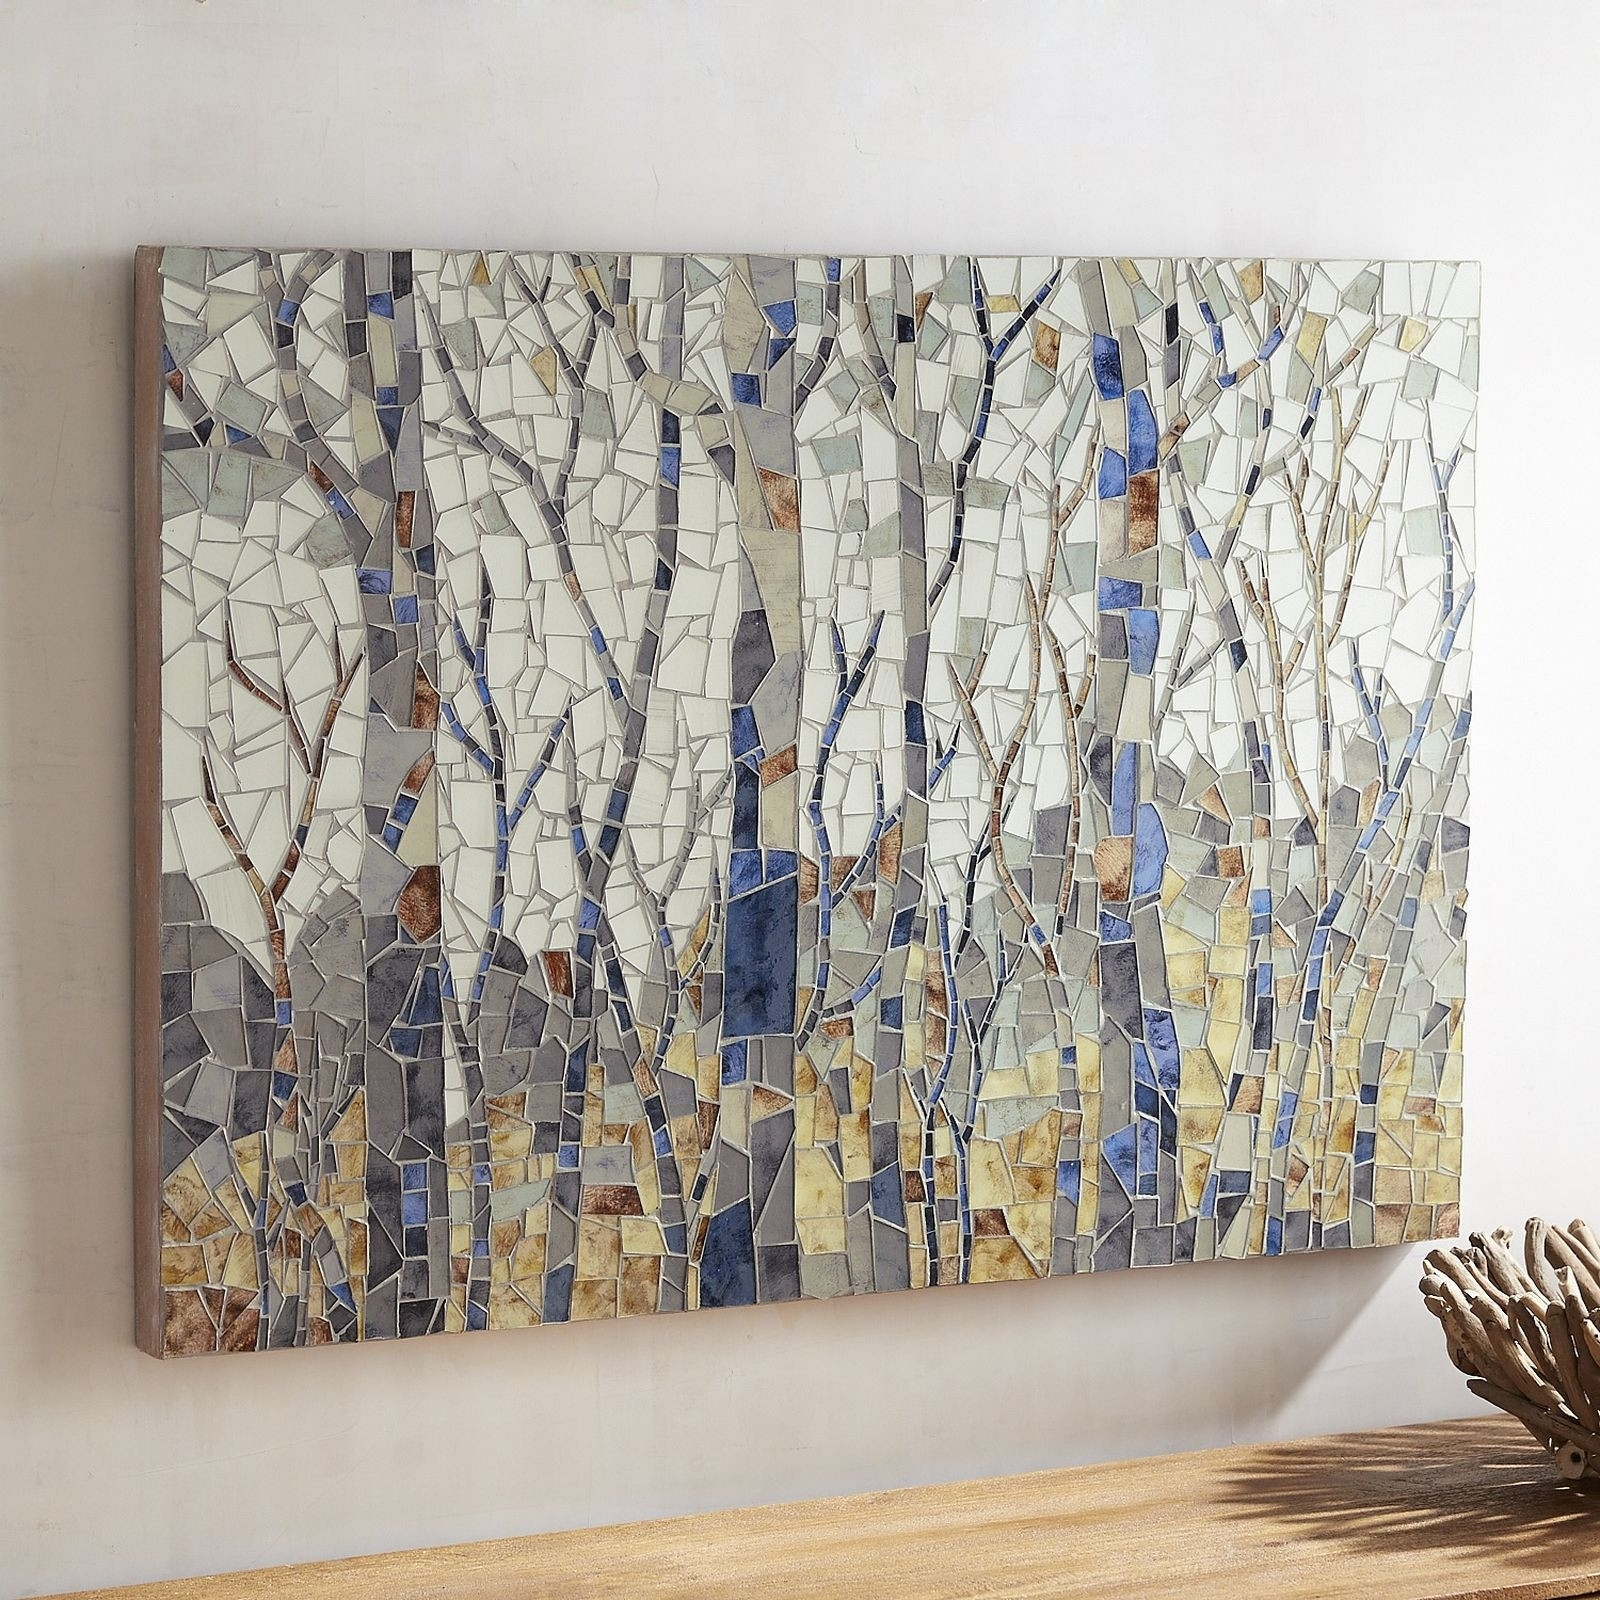 Mosaic Wall Art Simple Best 25 Ideas Pinterest Striking | Realvalue – With Regard To Mosaic Wall Art (View 4 of 20)